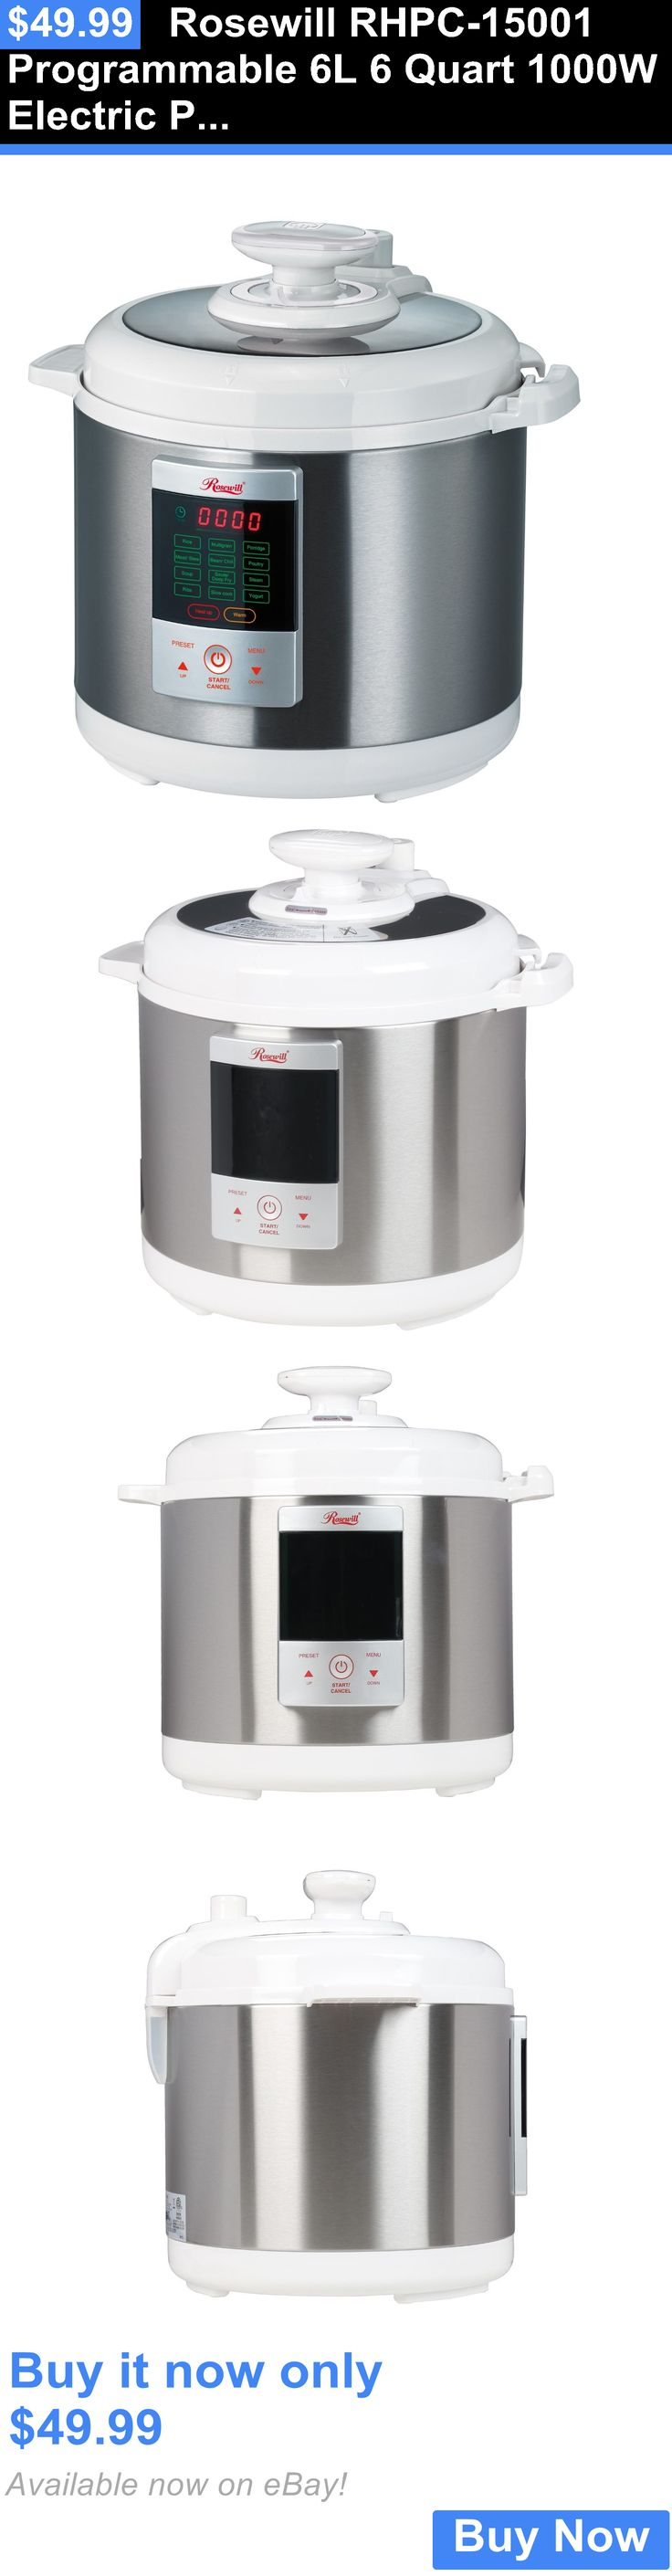 Pressure cooker bed bath beyond - Small Kitchen Appliances Rosewill Rhpc 15001 Programmable 6l 6 Quart 1000w Electric Pressure Cooker